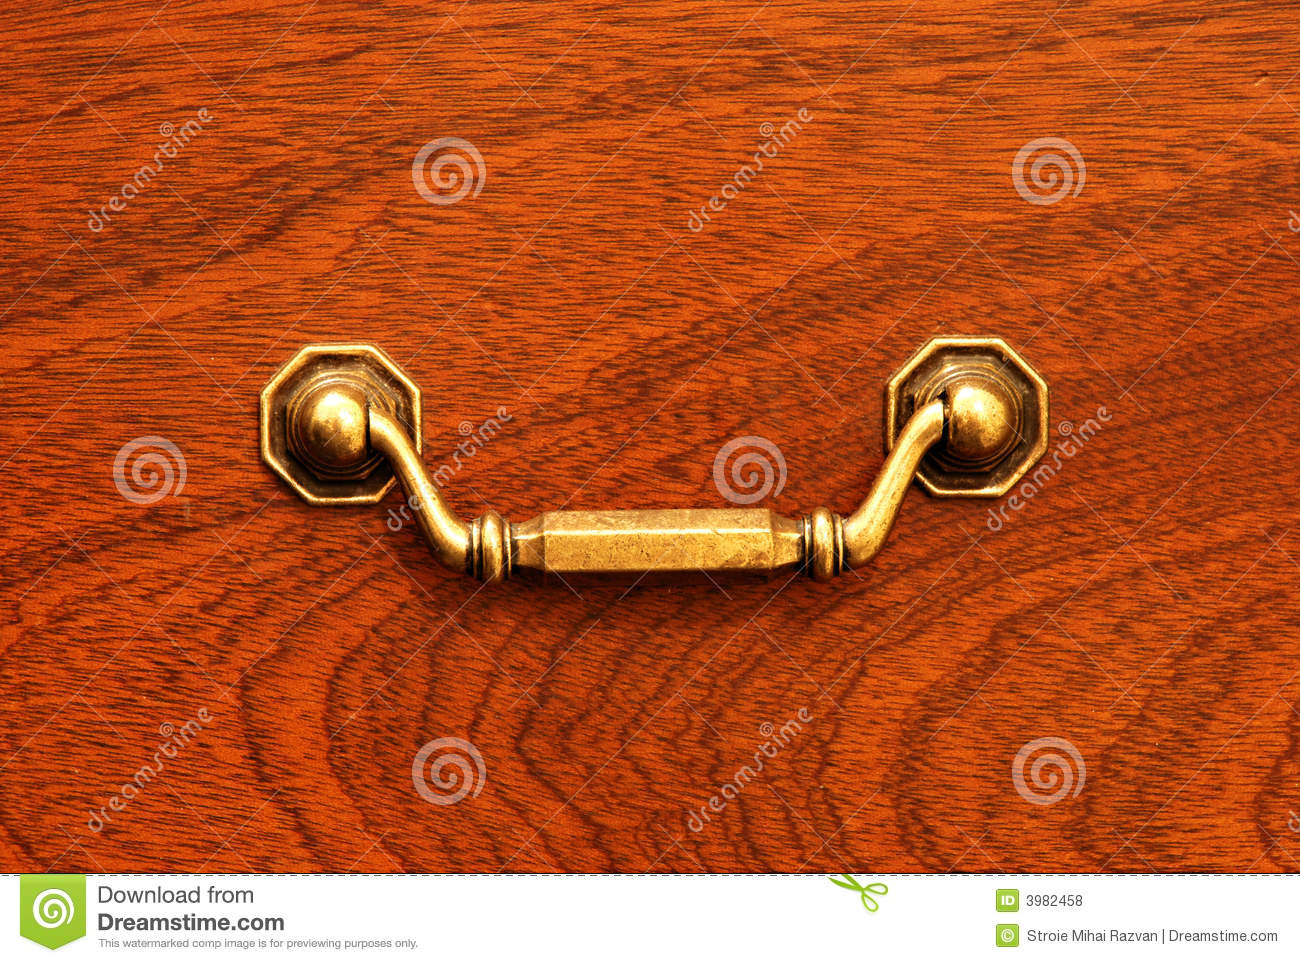 Drawer Front With Antique Drawer Handle Stock Photo - Image of ...